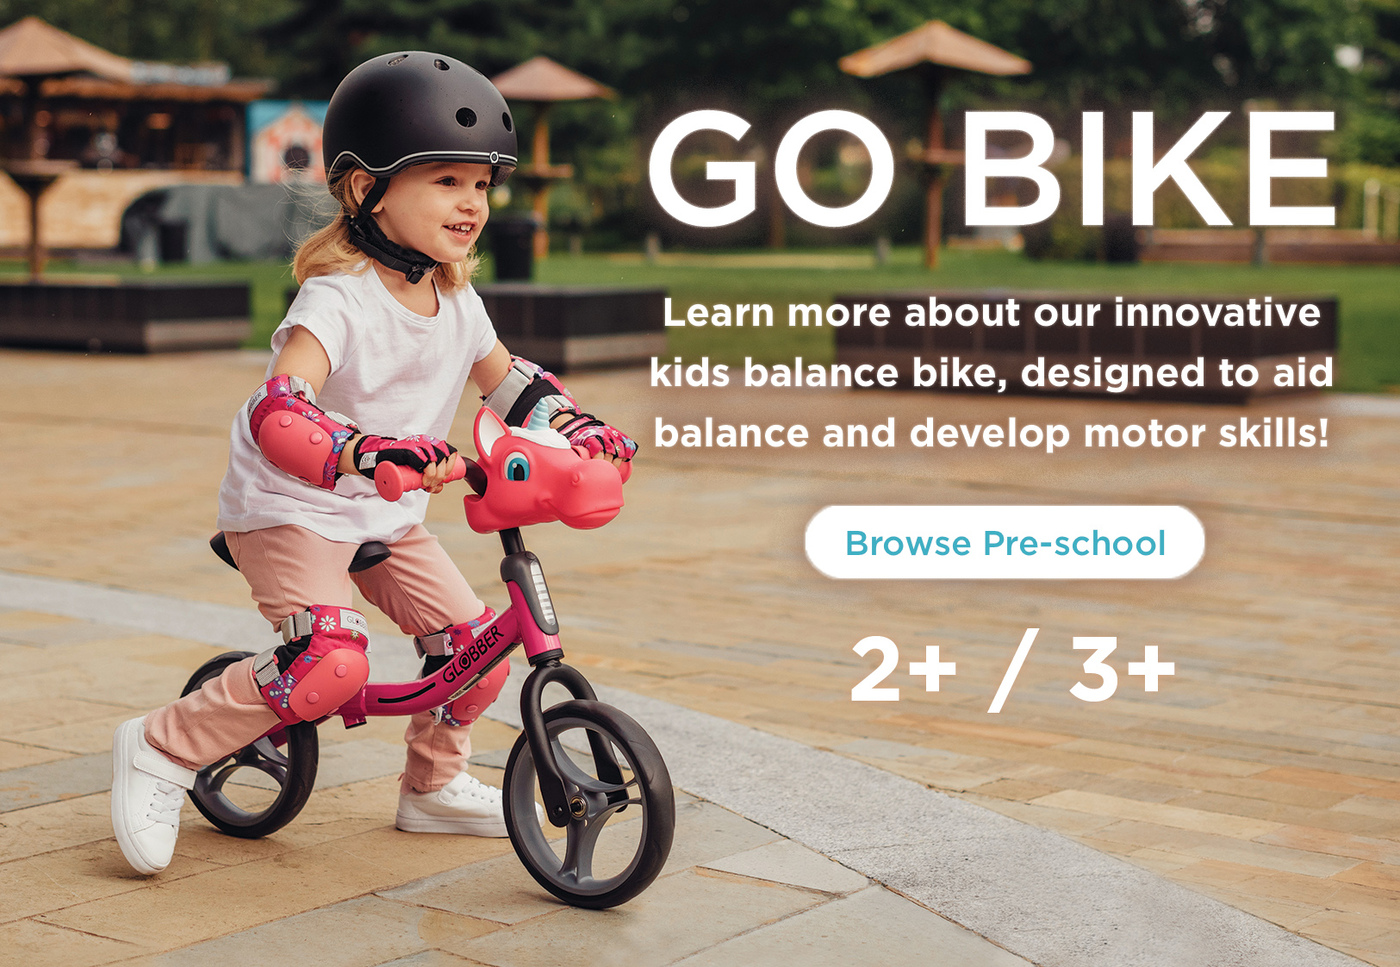 Learn more about our innovative kids balance bike, designed to aid balance and develop motor skills!